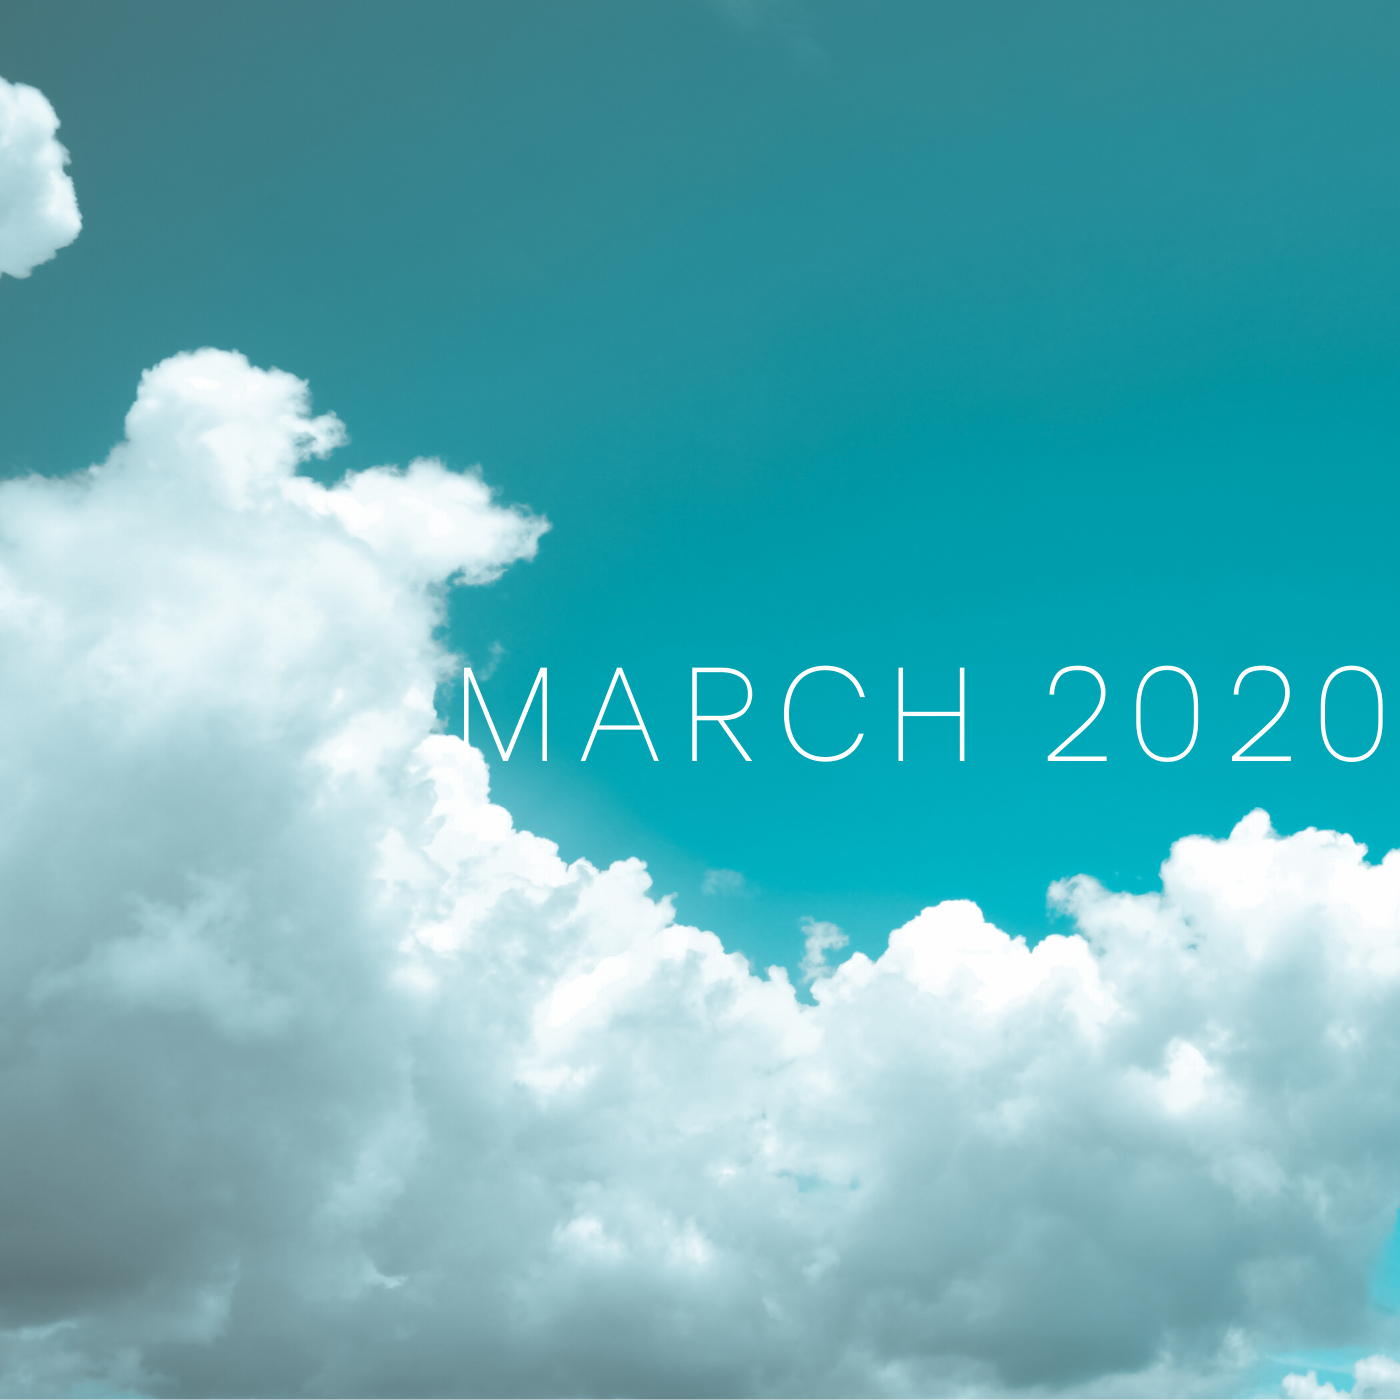 a square image of a teal sky with fluffy white clouds and white text saying march 2020